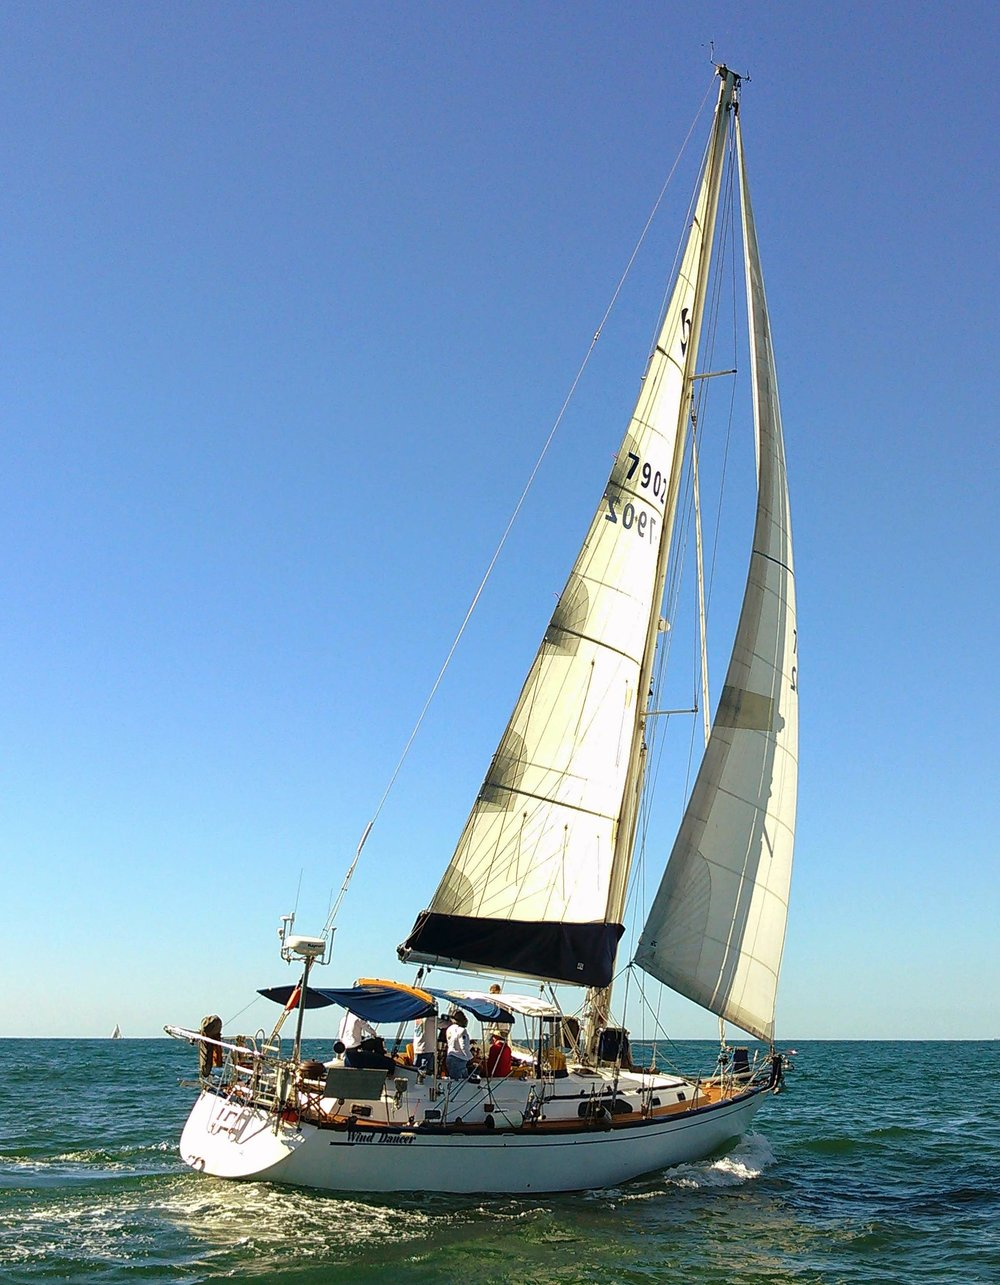 The Tayana 47 Wind Dancer sailed to Hawaii and back with her UK Sailmakers HydraNet Radial main and dacron genoa and staysail. Oliver recommended HyrdaNet for the main since it is the sail that is up 100% of the time the boat is sailing.